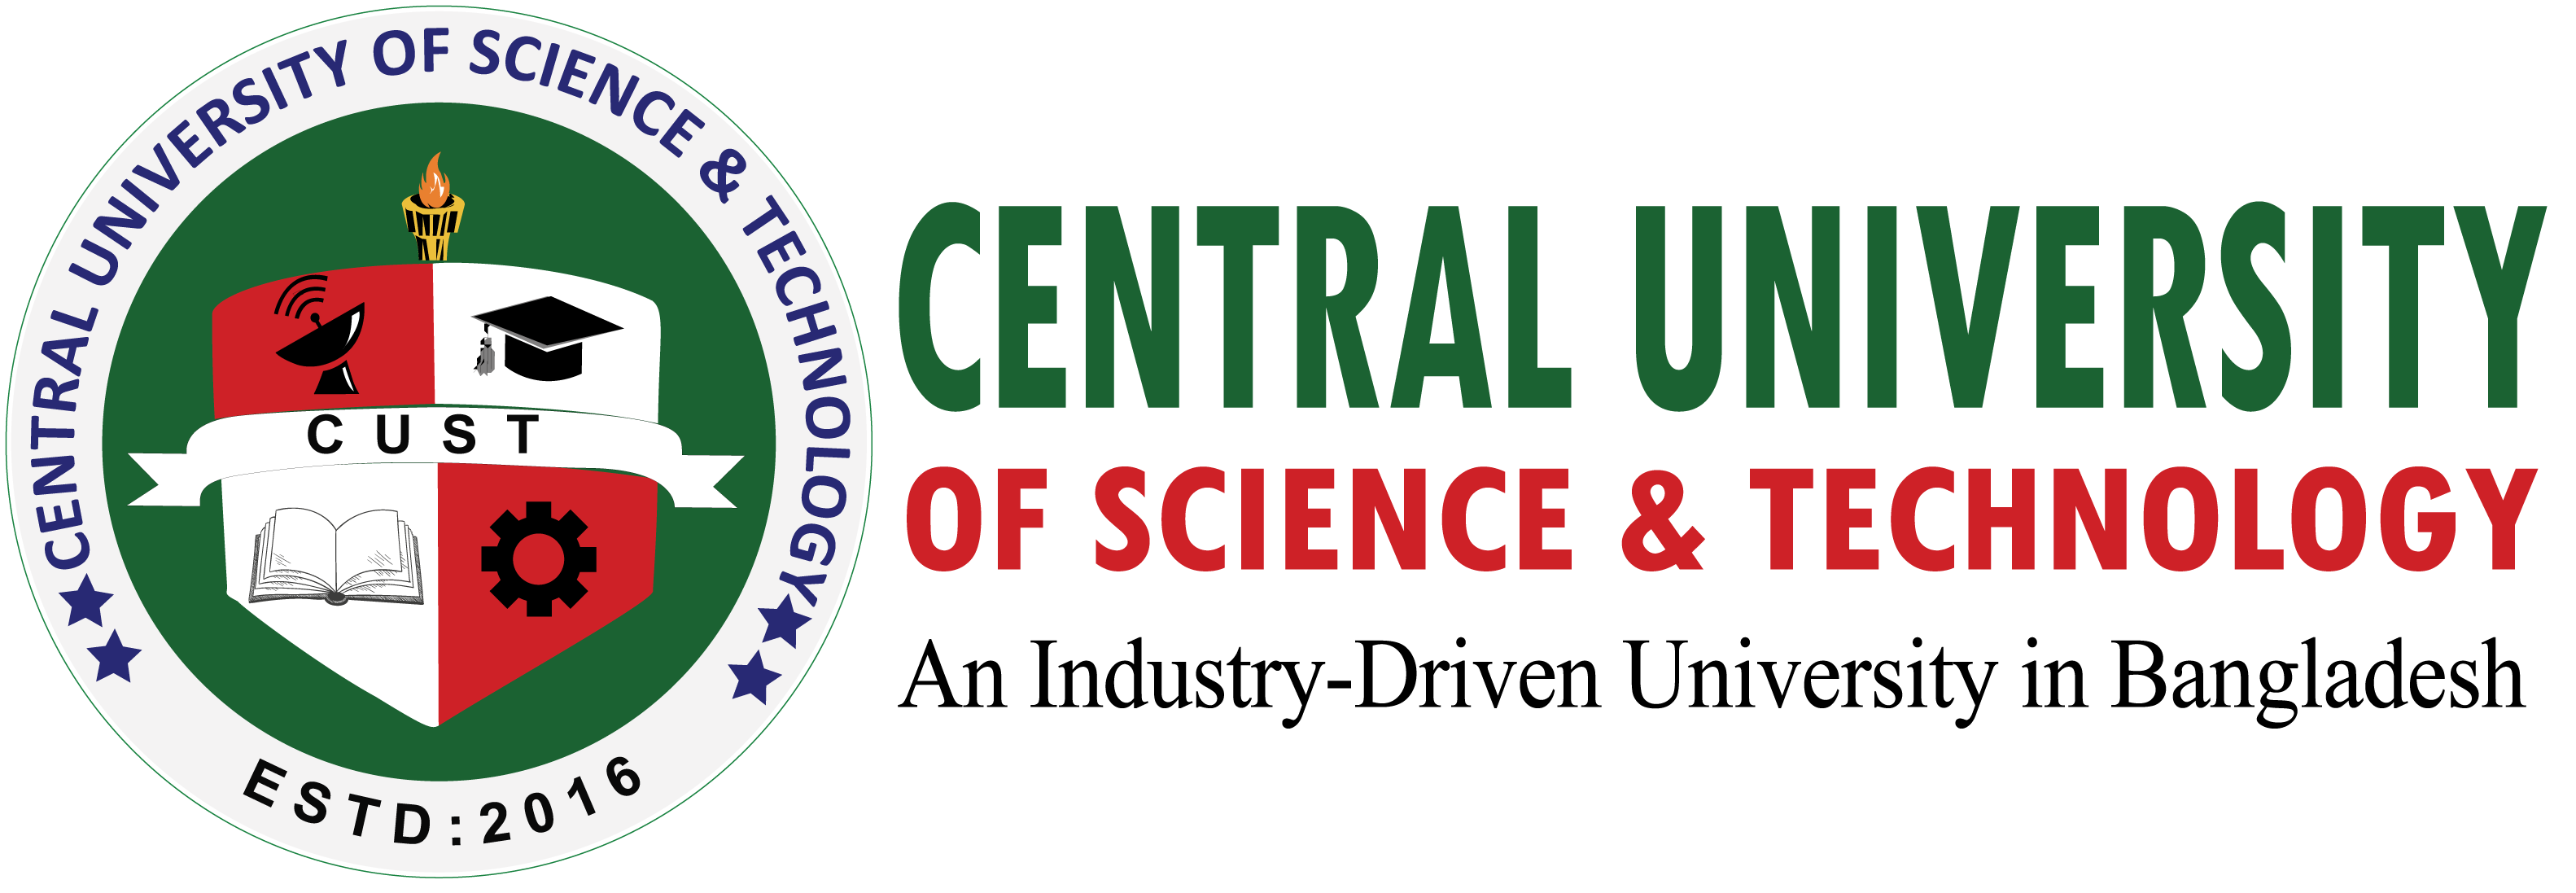 Last Date of Payment & Course Registration of CSE, Batch 3 – Fall (Bijoy) 2019 - Central University of Science & Technology